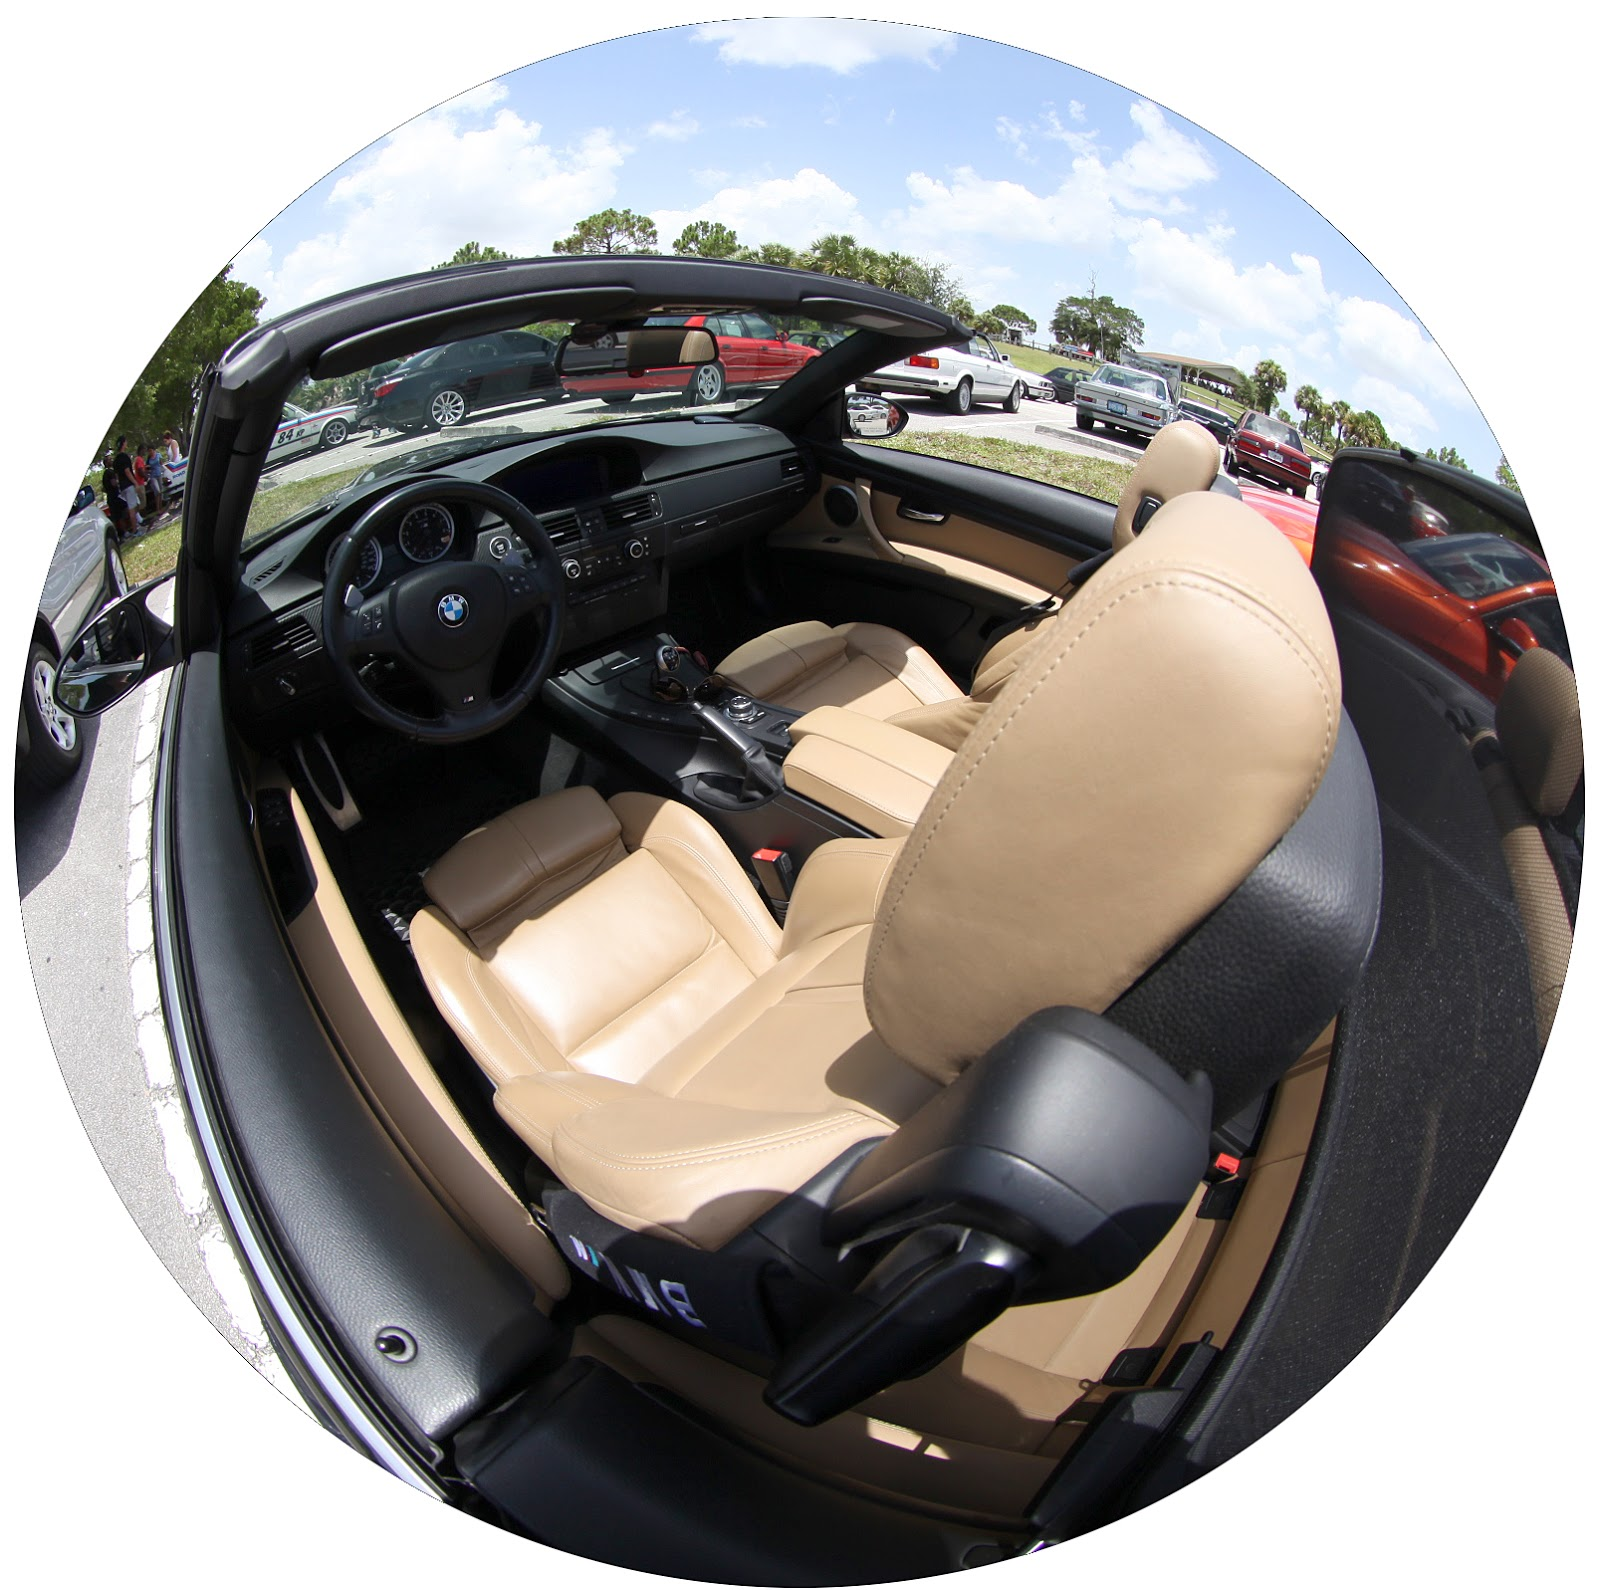 Bmw Z4m Interior: M3s At BMWCCA Everglades Chapter 2013 Picnic